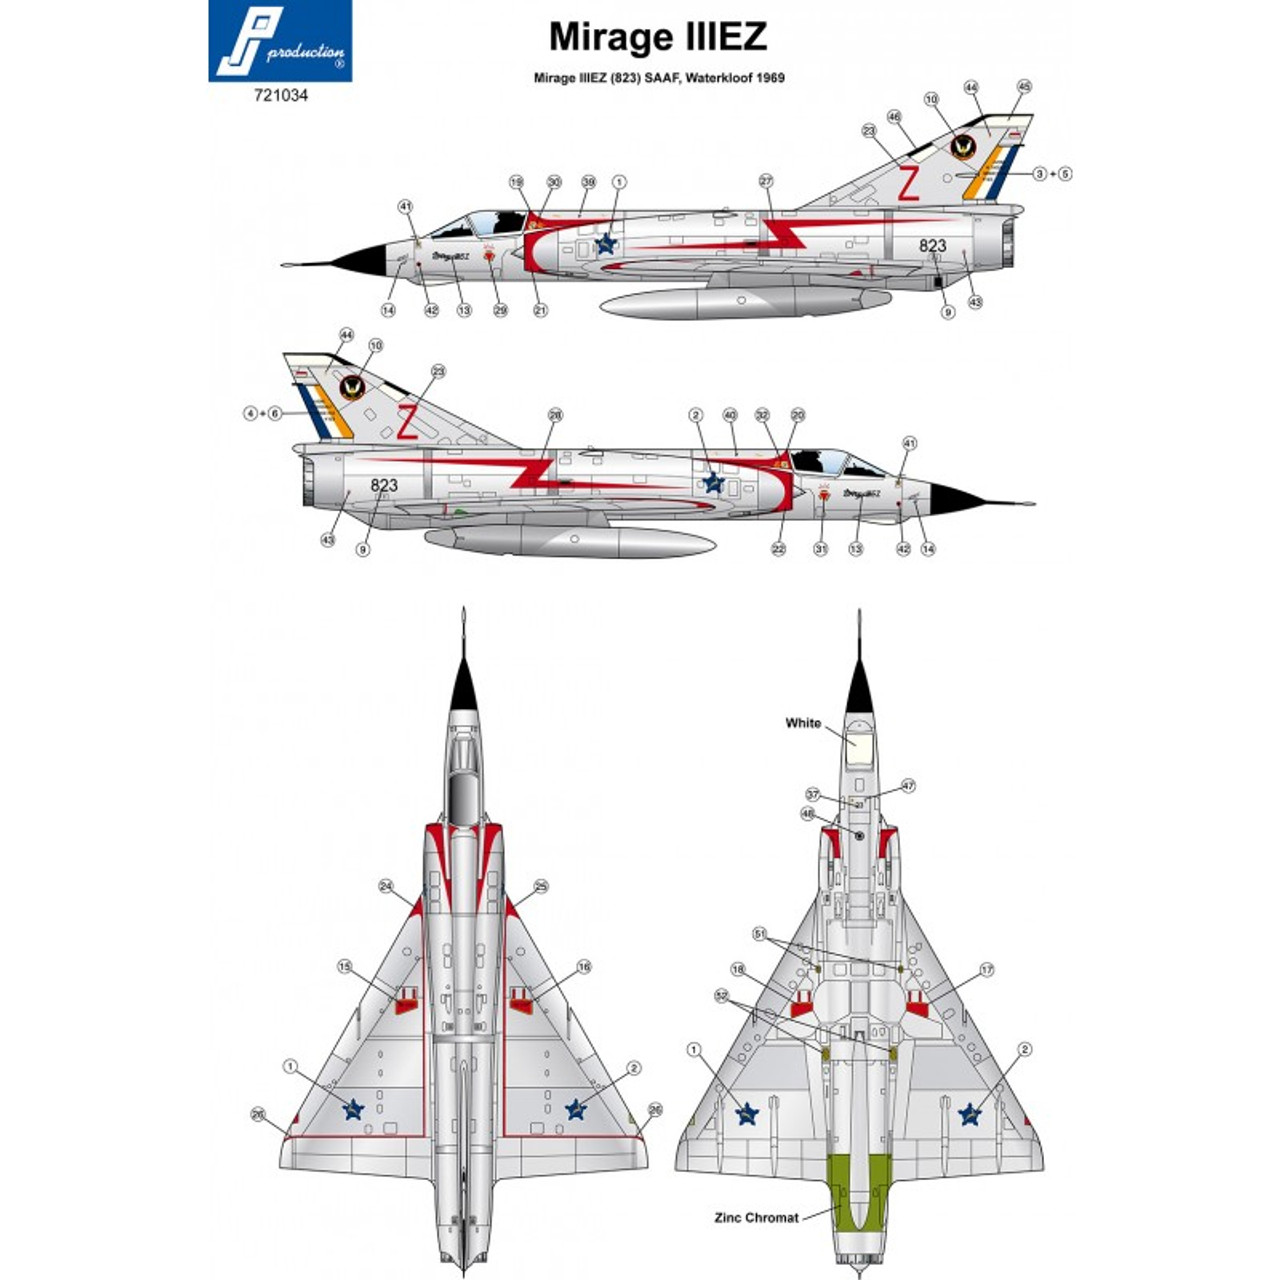 PJ Productions Dassault Mirage IIIEZ Kit 1:72